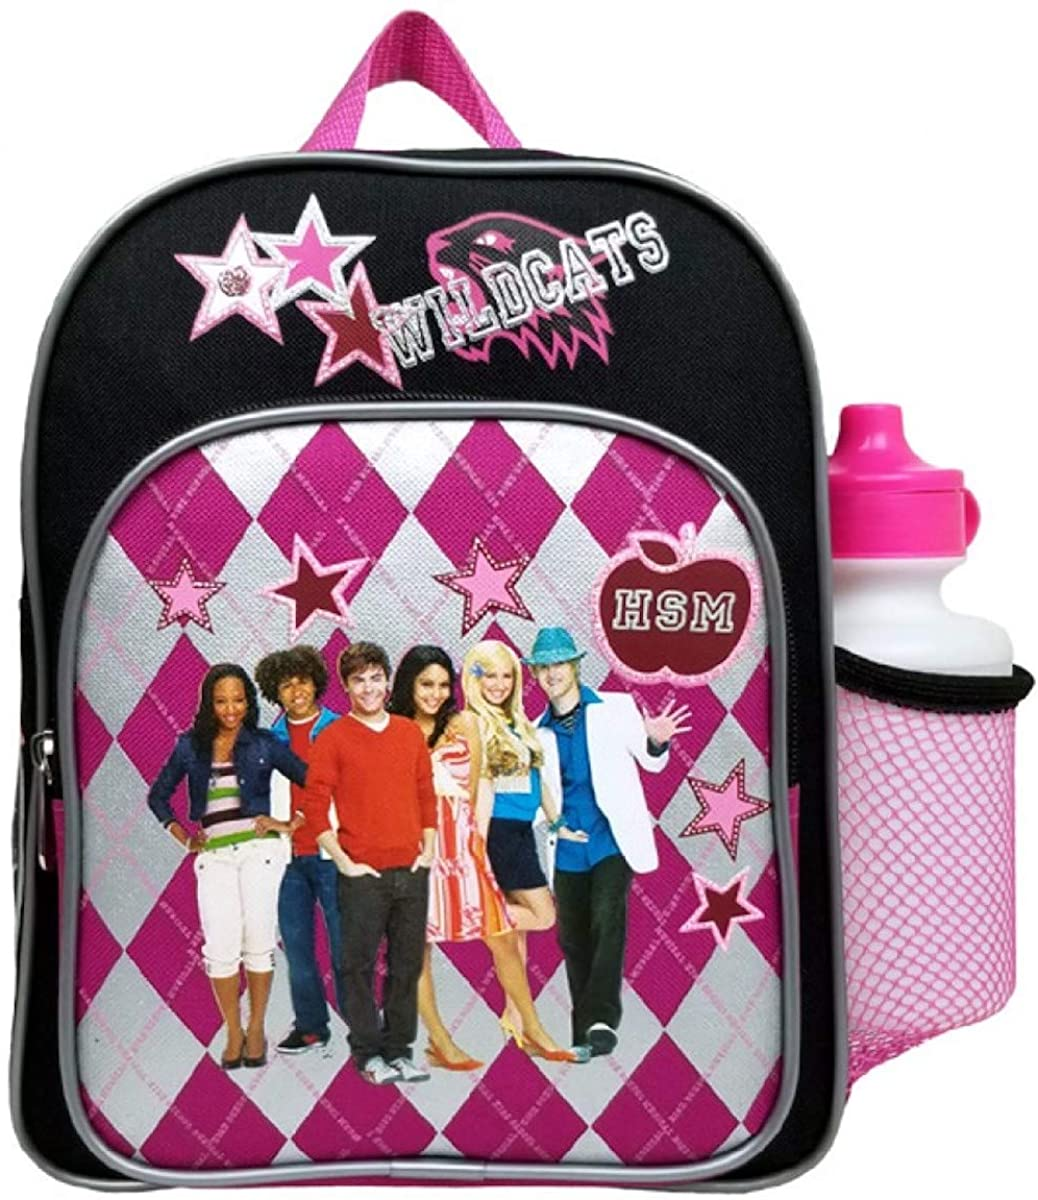 Disney High School Musical Plaid Mini Backpack with Water Bottle #56856